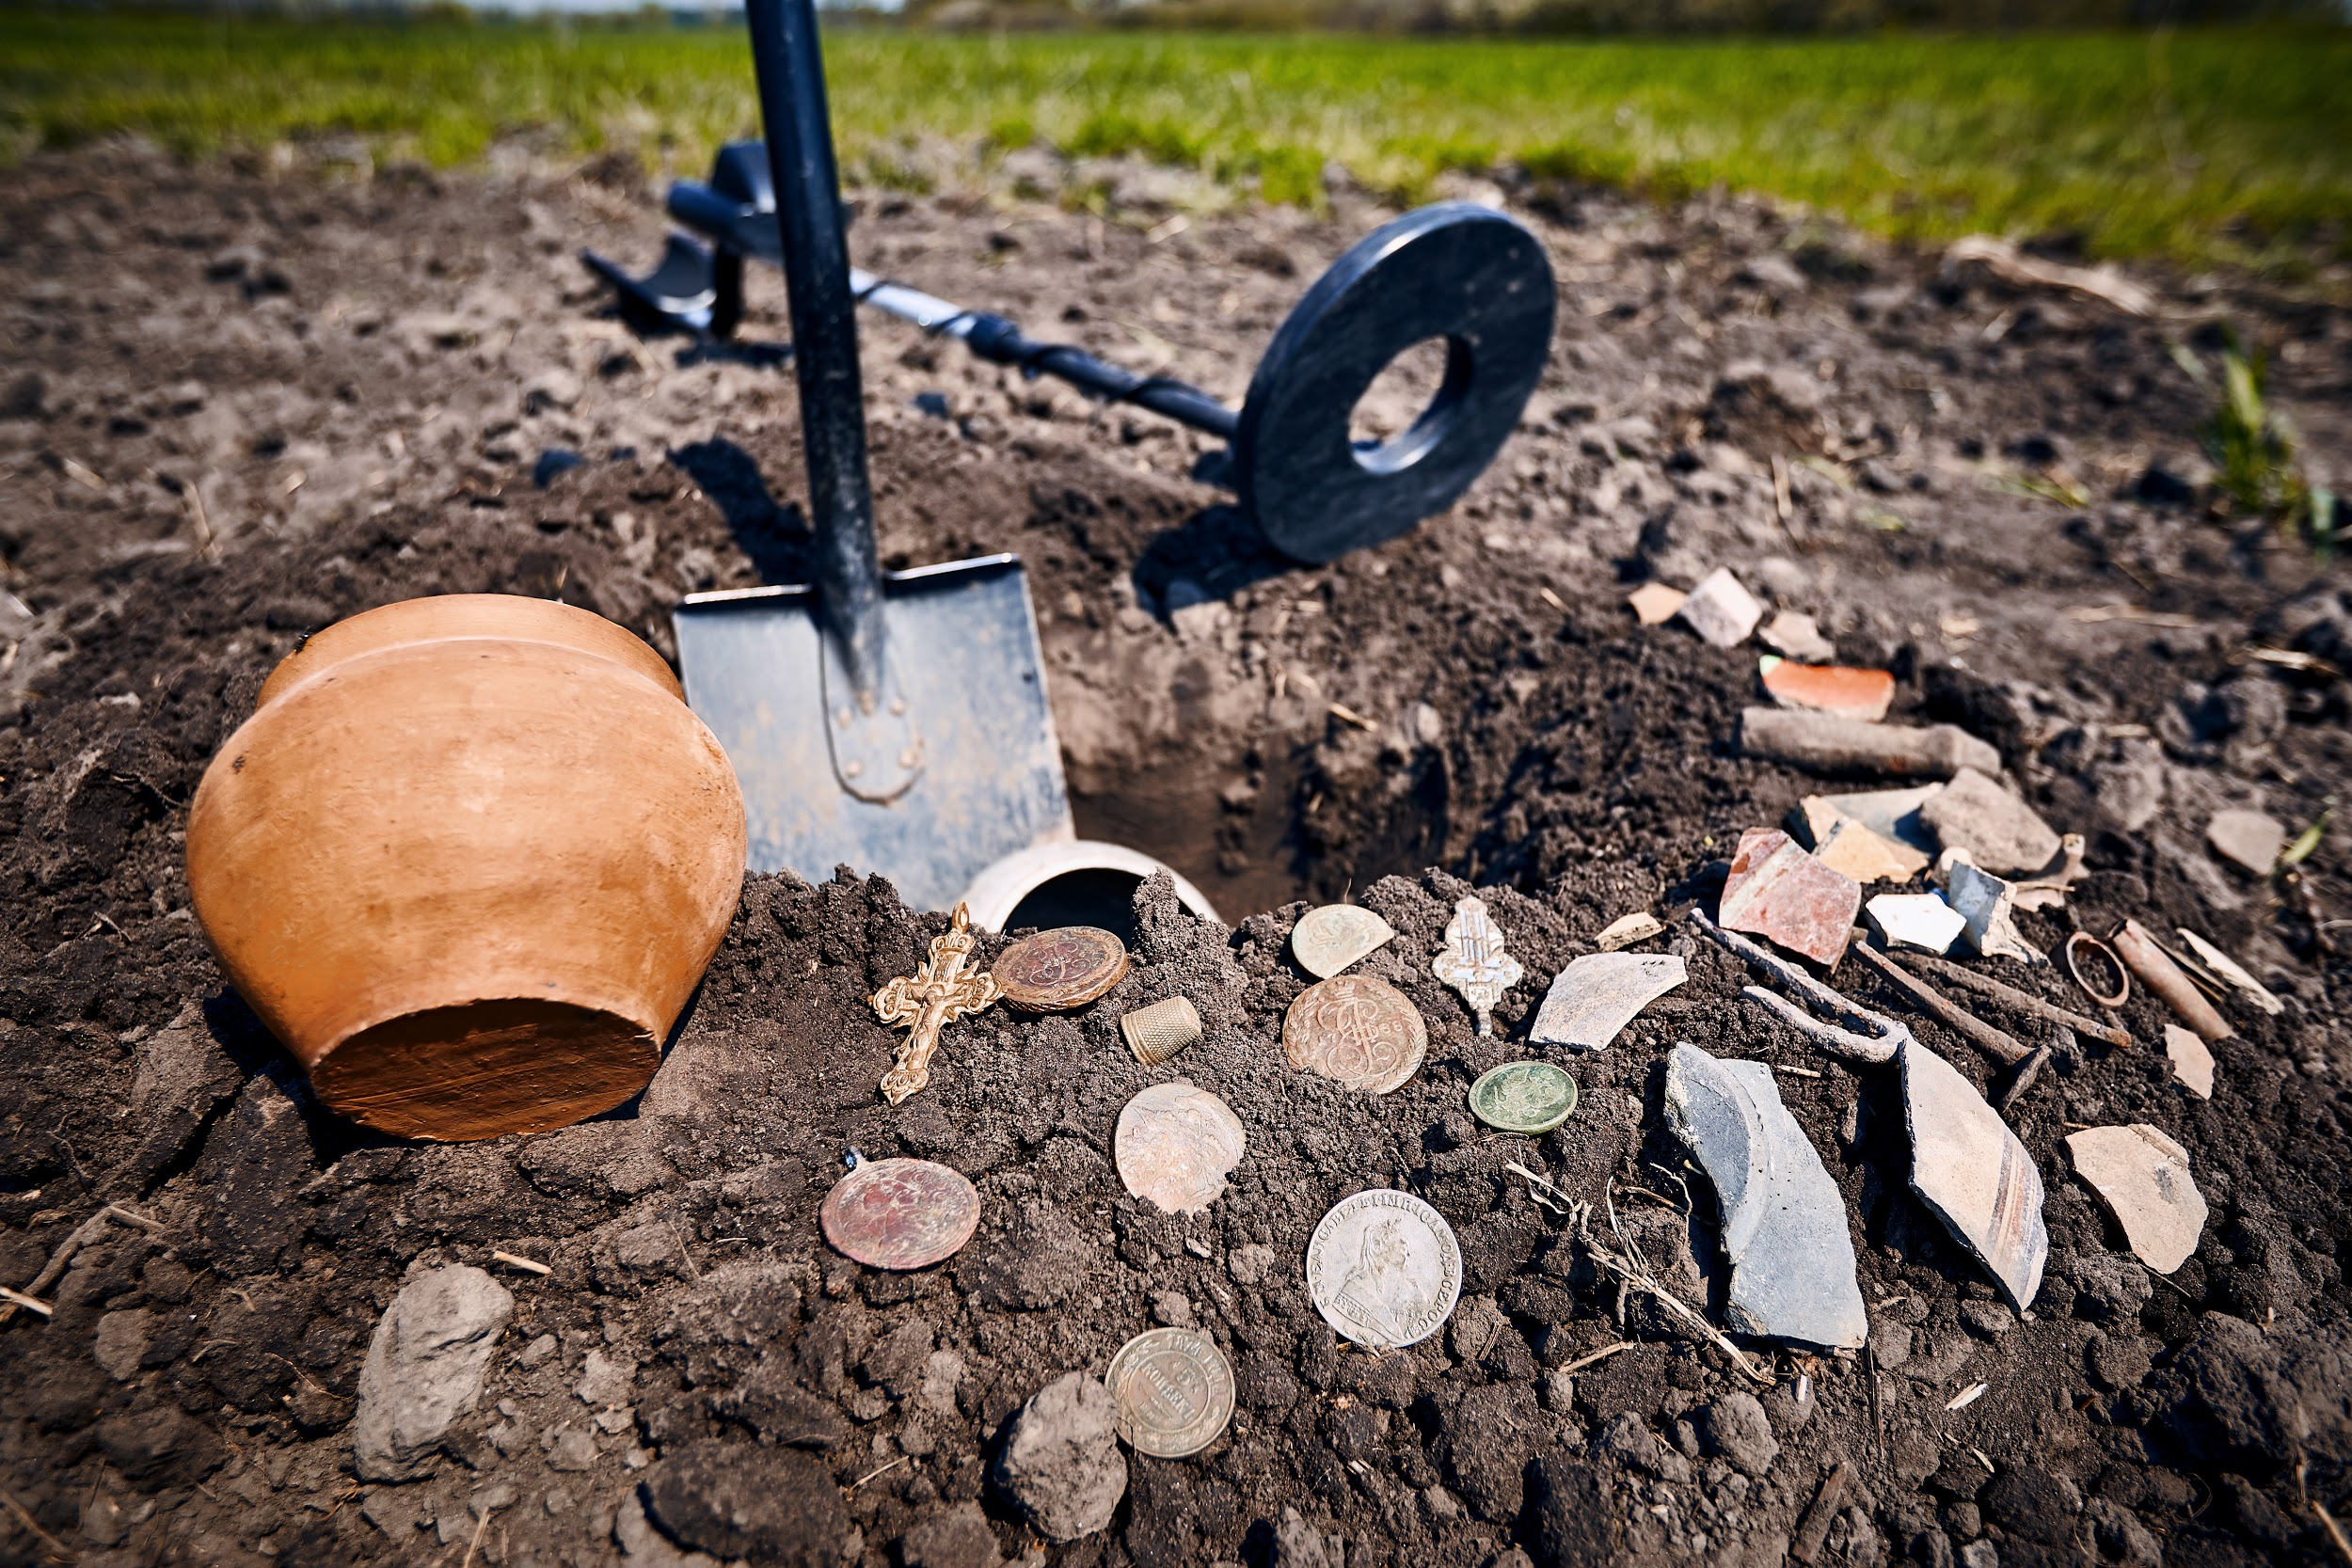 A successful treasure hunt thanks to a metal detector from a pawn shop.